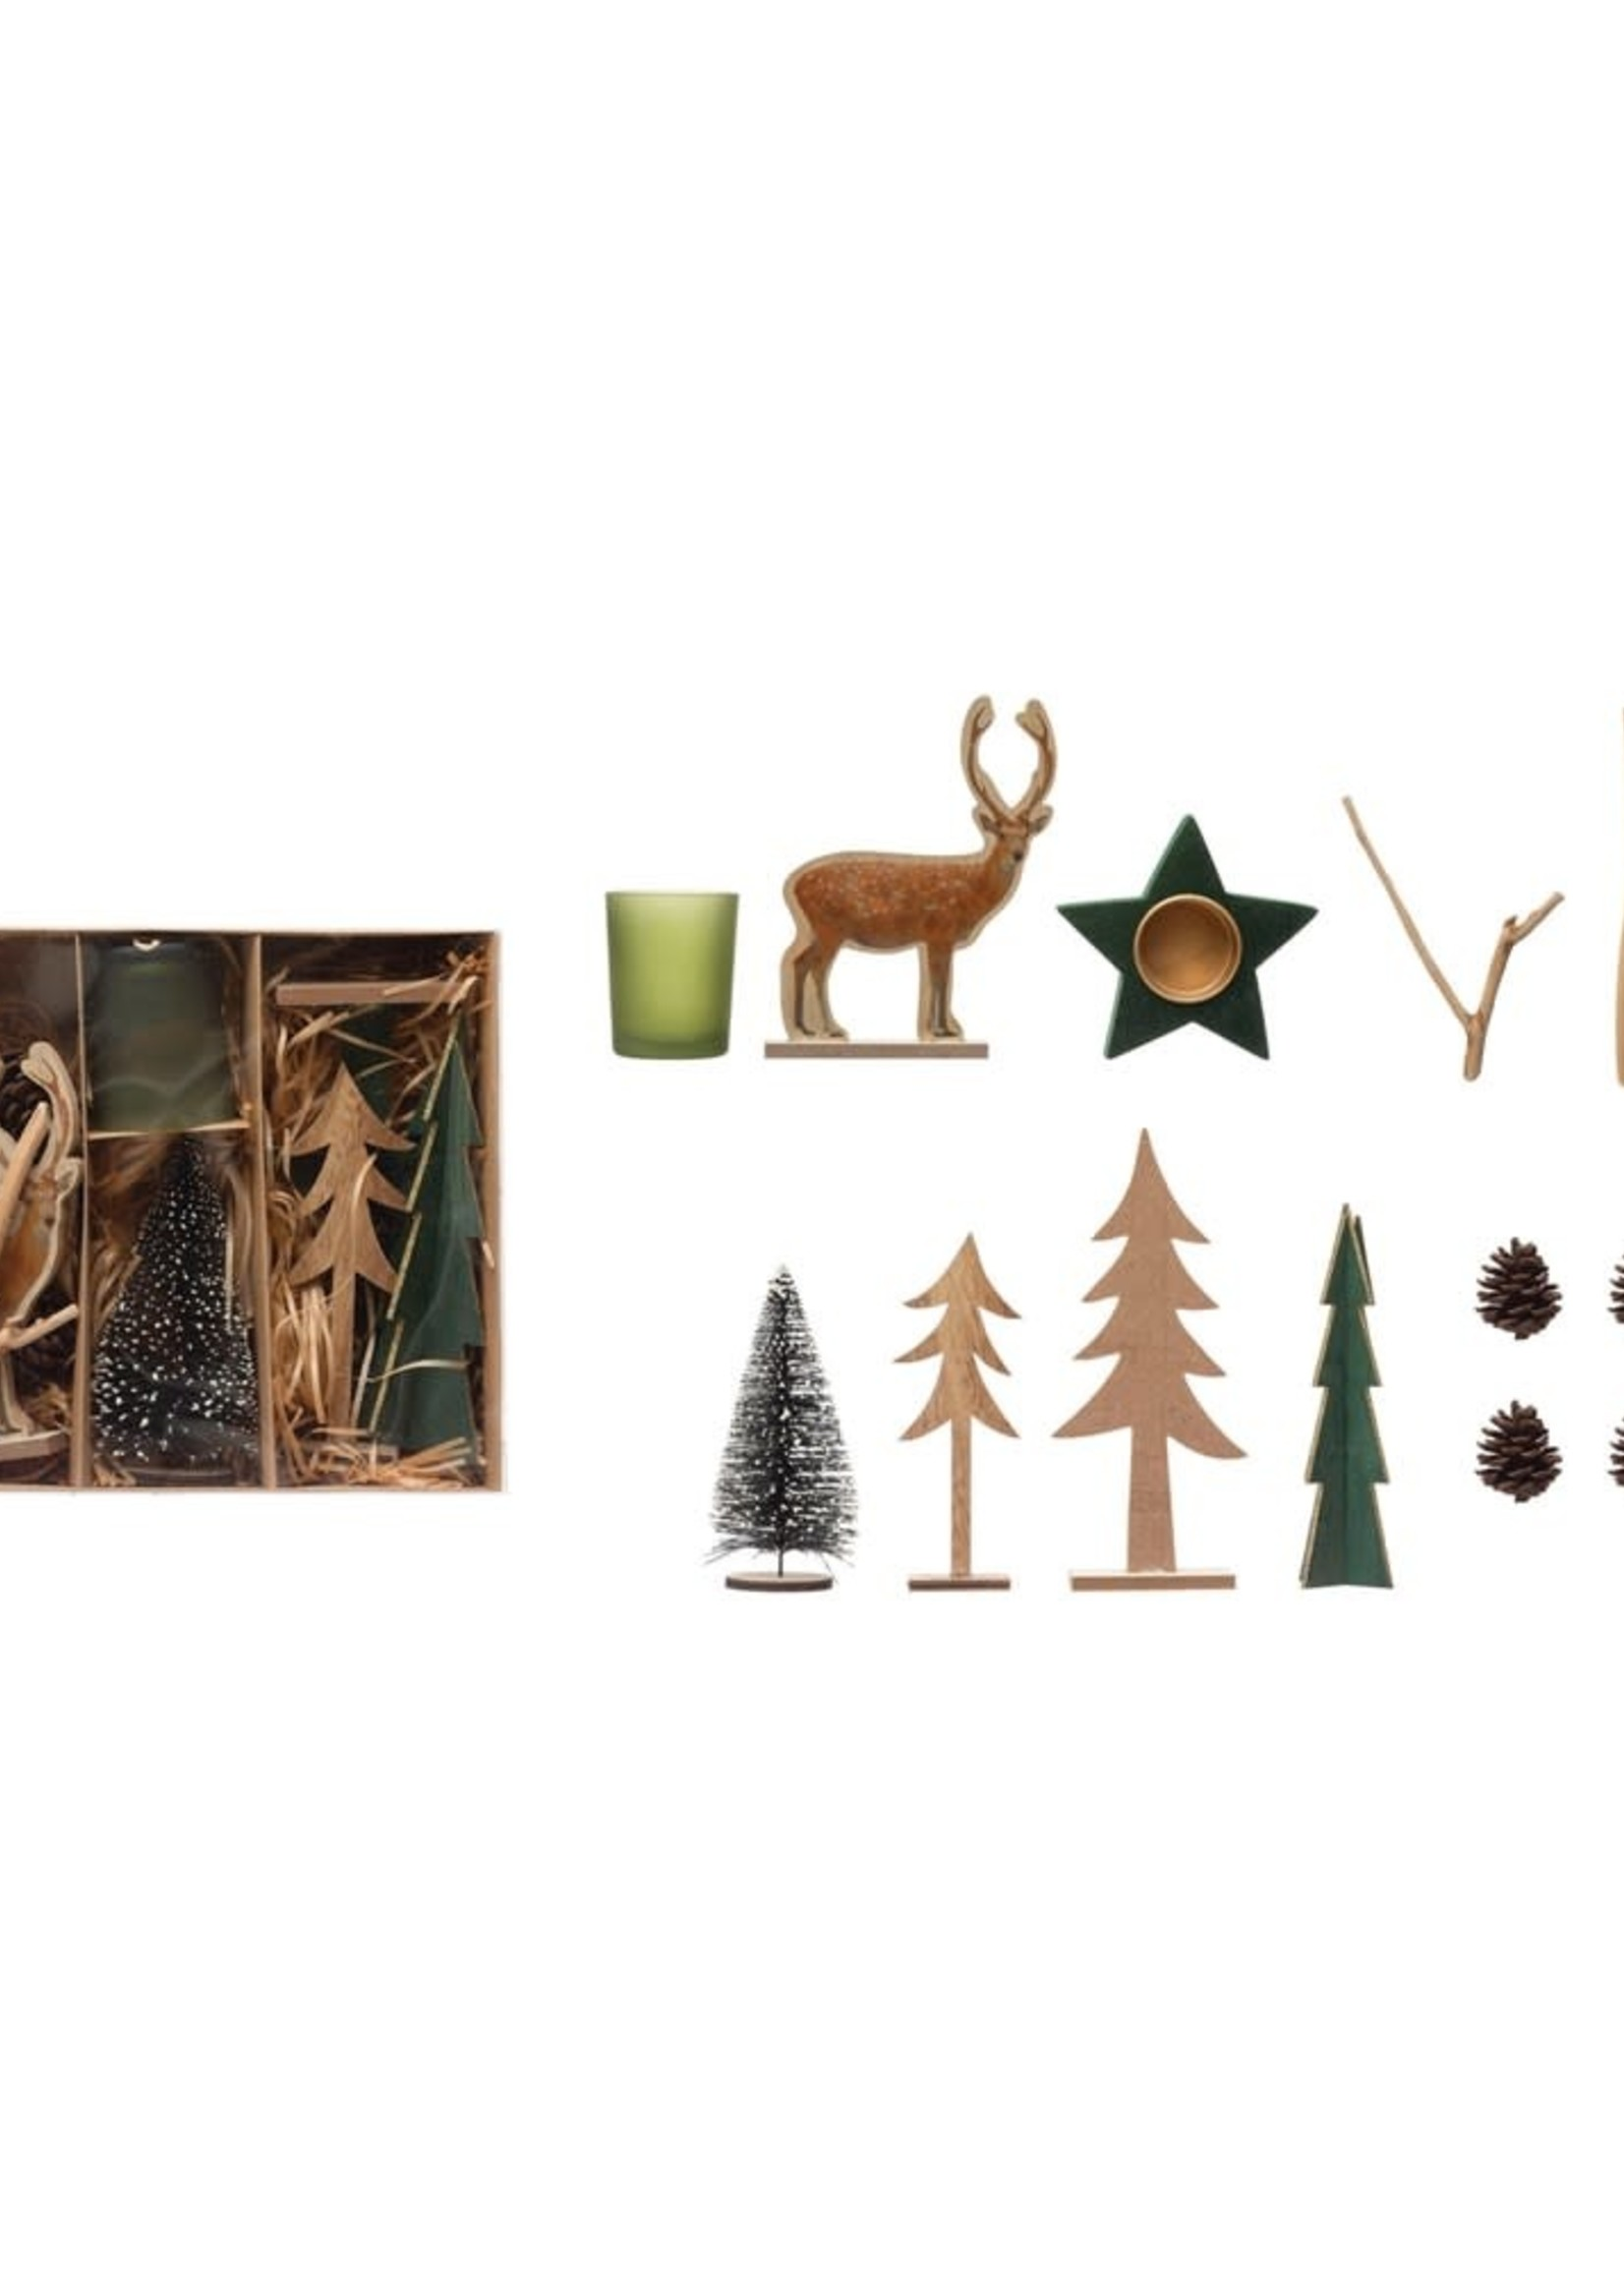 Candle Garden Kit w/ Bottle Brush Tree, Pinecones, Tealights, Laser Cut Figures & Twigs, Boxed Set of 12